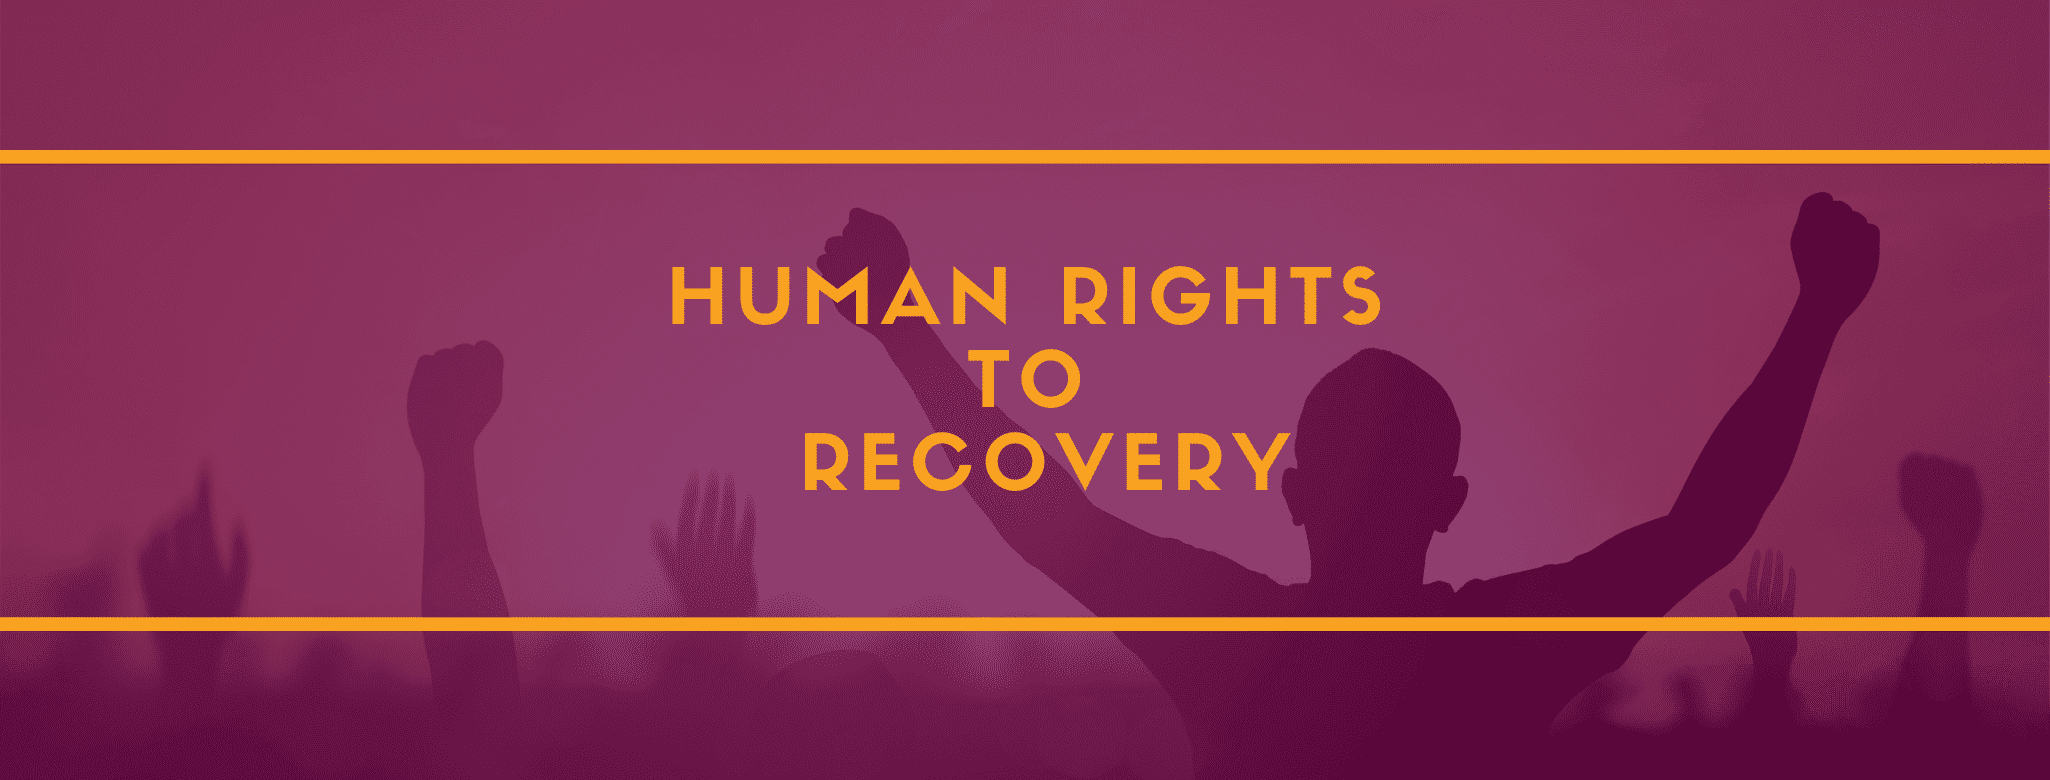 Human Rights to Recovery